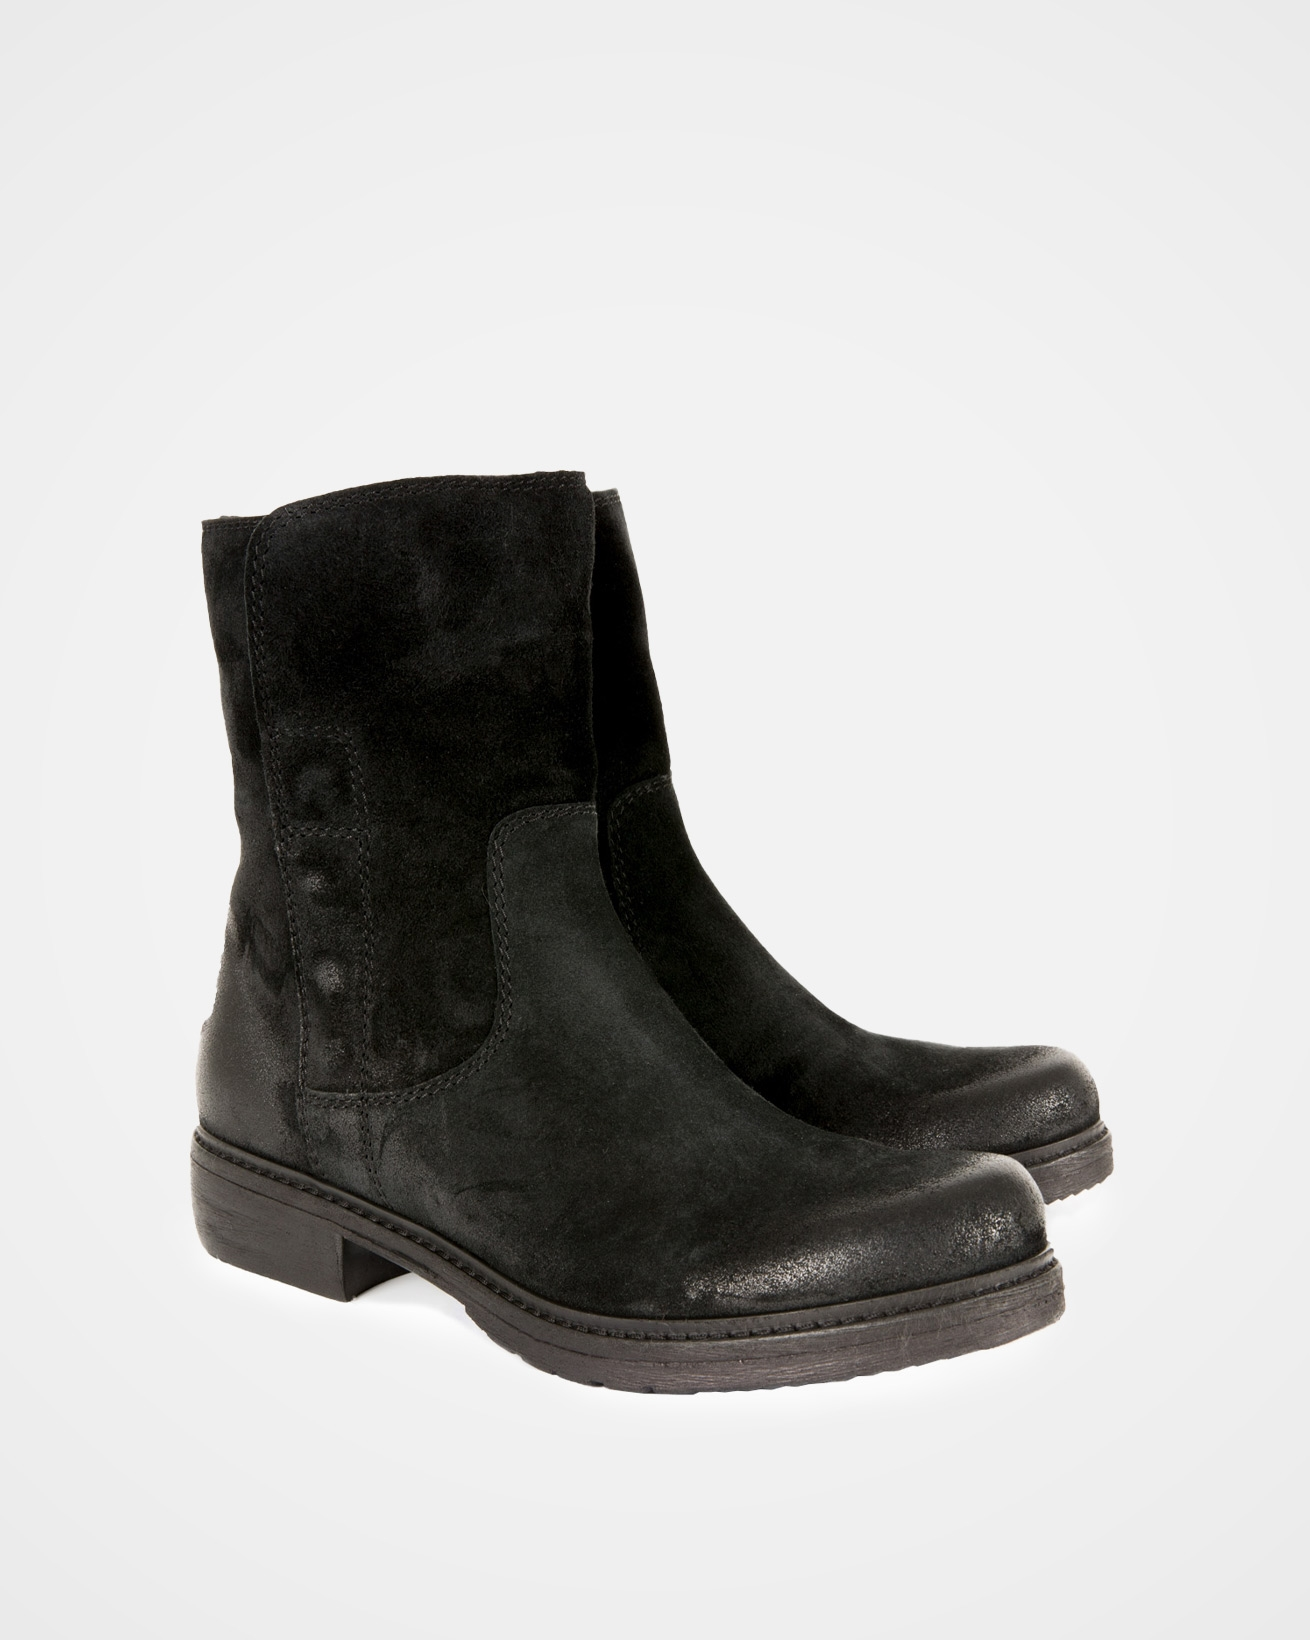 Essential Ankle Boots - Size 37 - Black - 2051